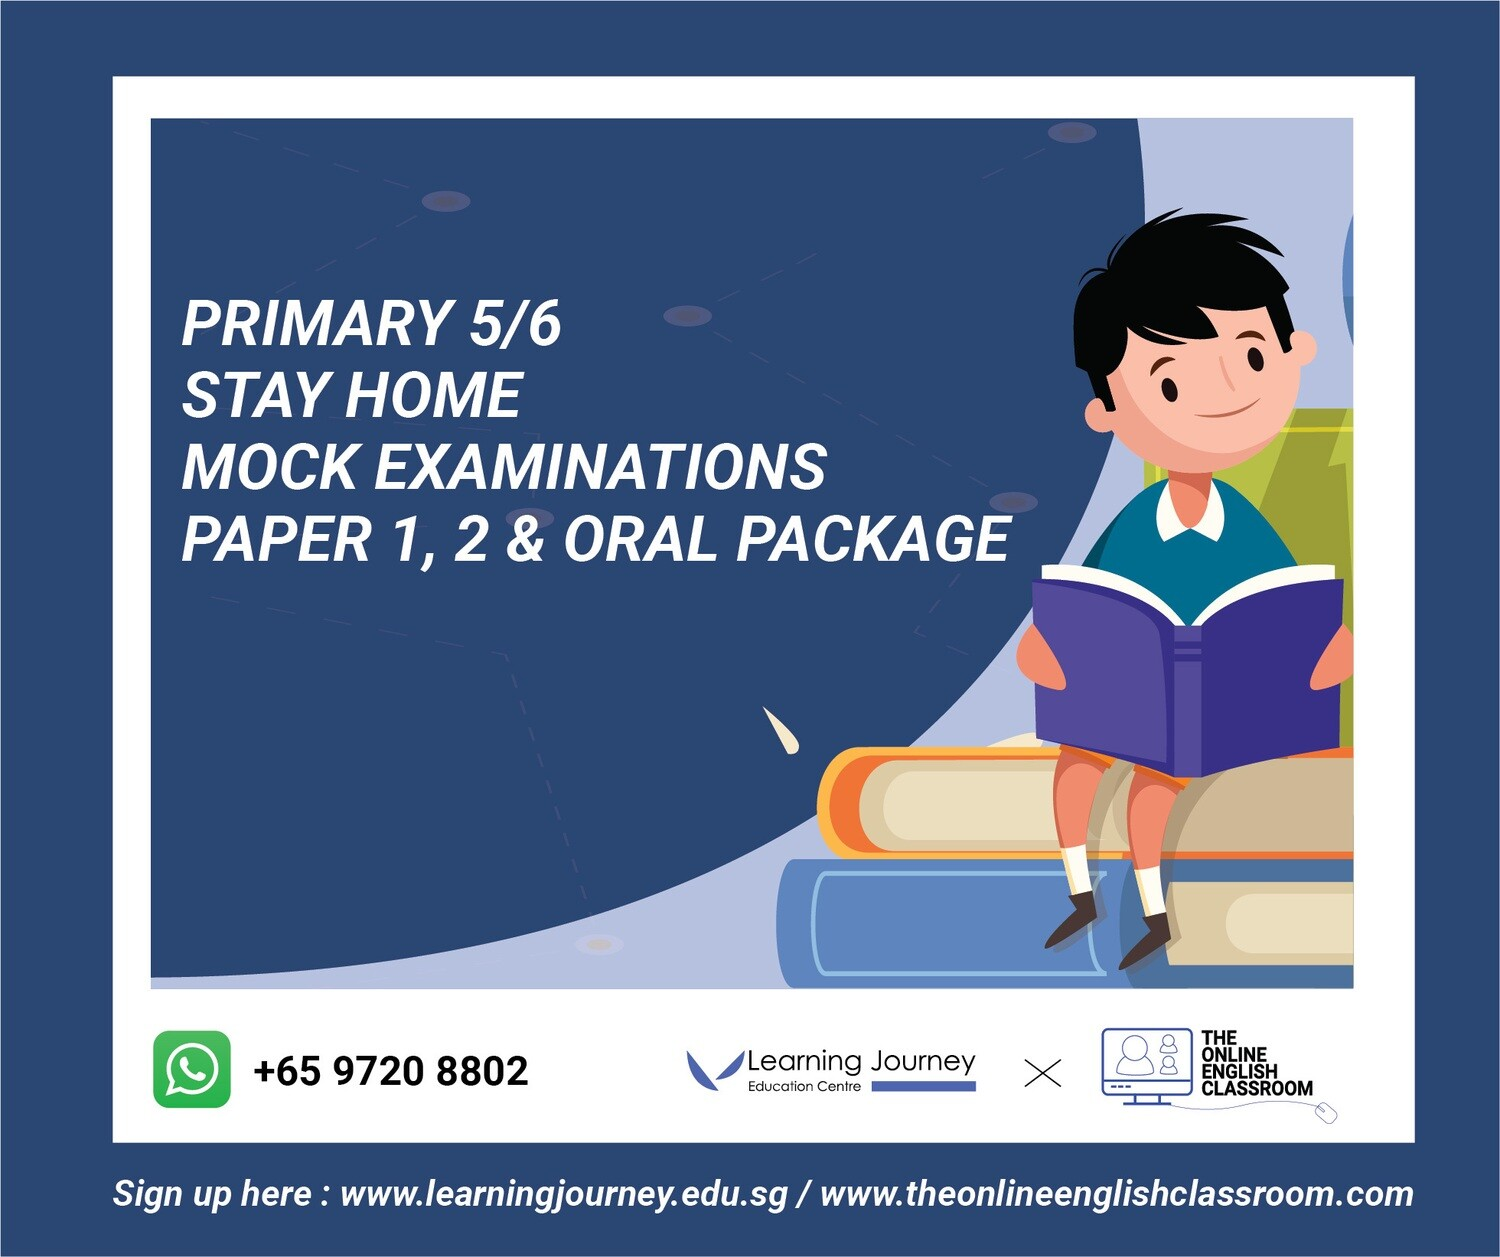 Primary 5 & 6 Mock Examinations Package [Paper 1, 2 and Oral]